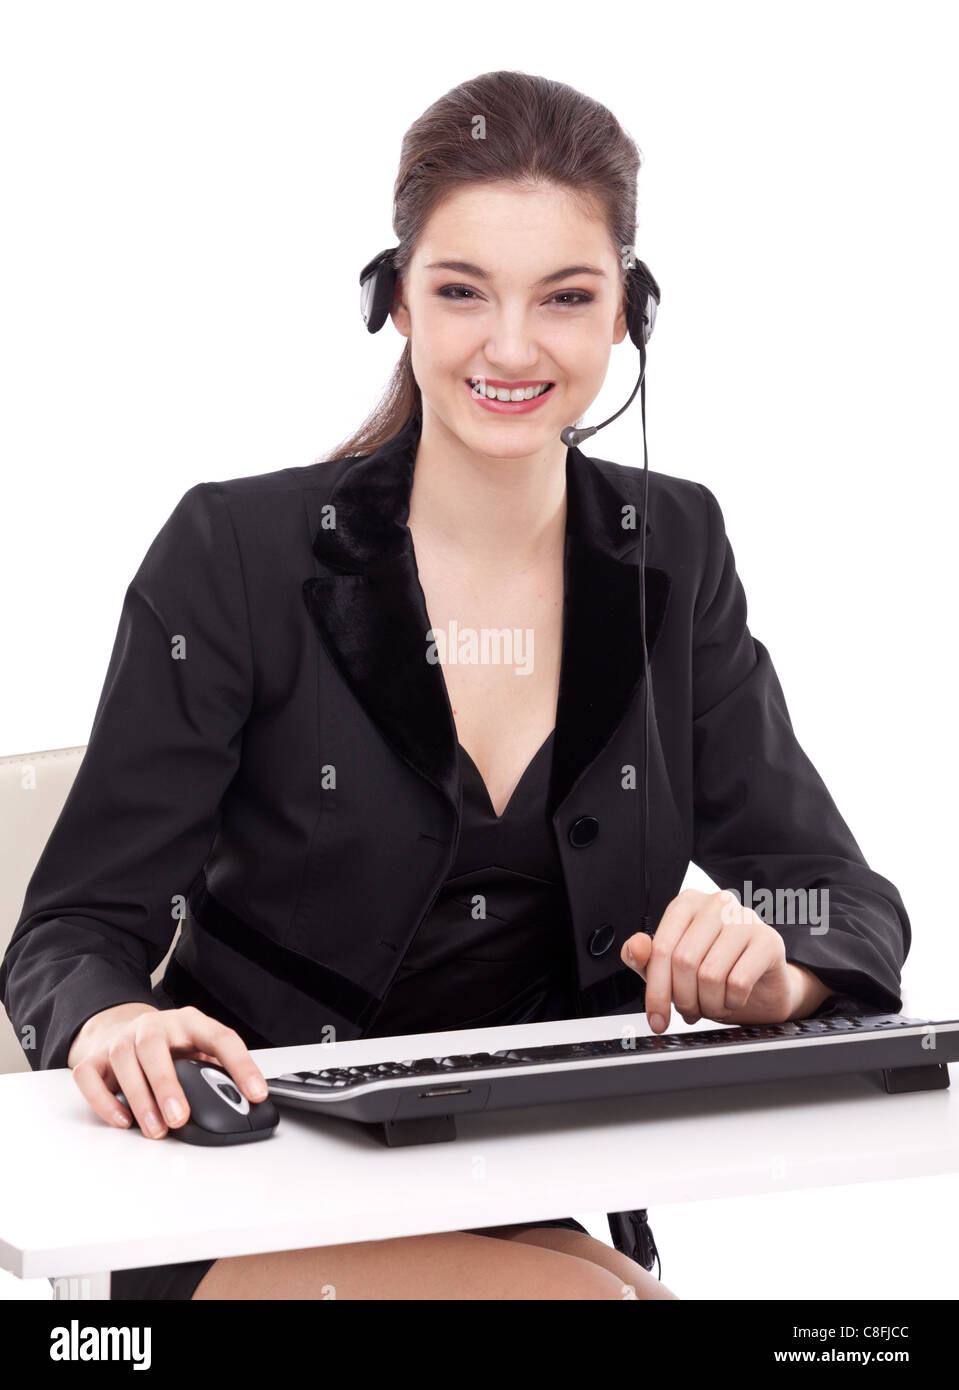 Smiling young woman - operator.Customer support. - Stock Image